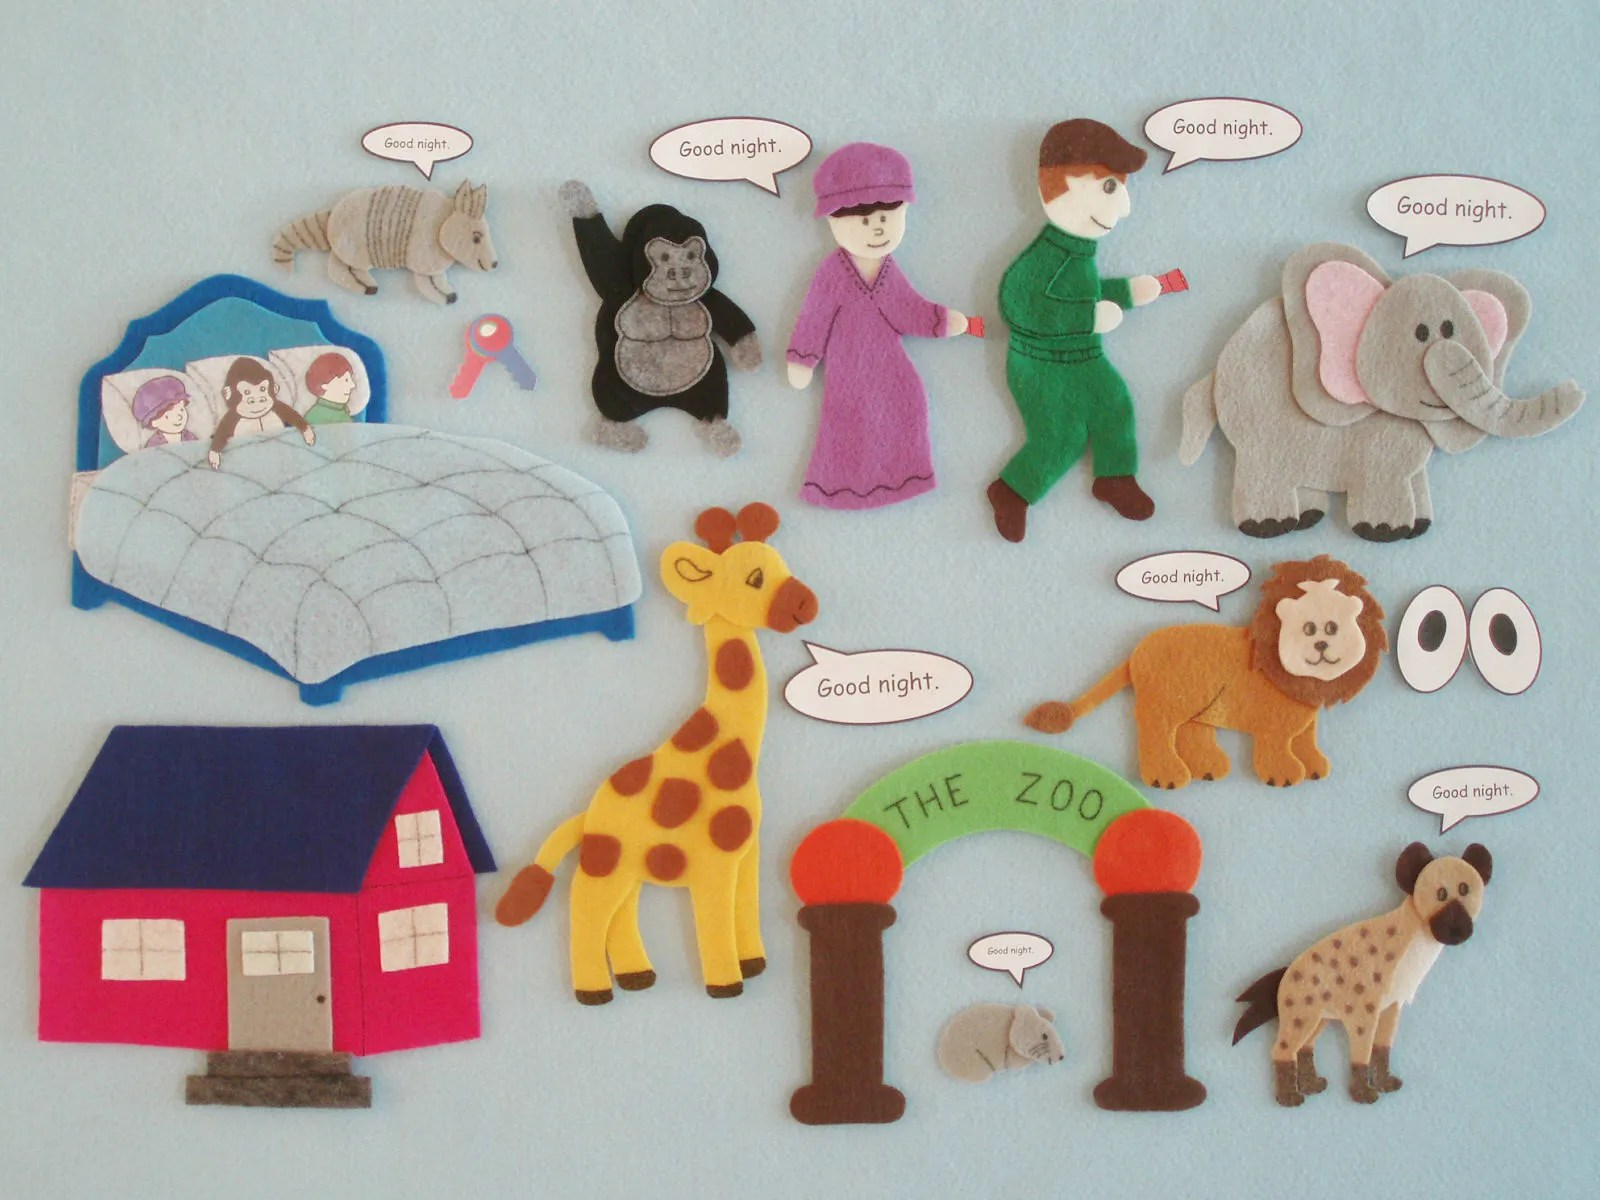 Goodnight Gorilla Felt Flannel Board Story Felt Animals